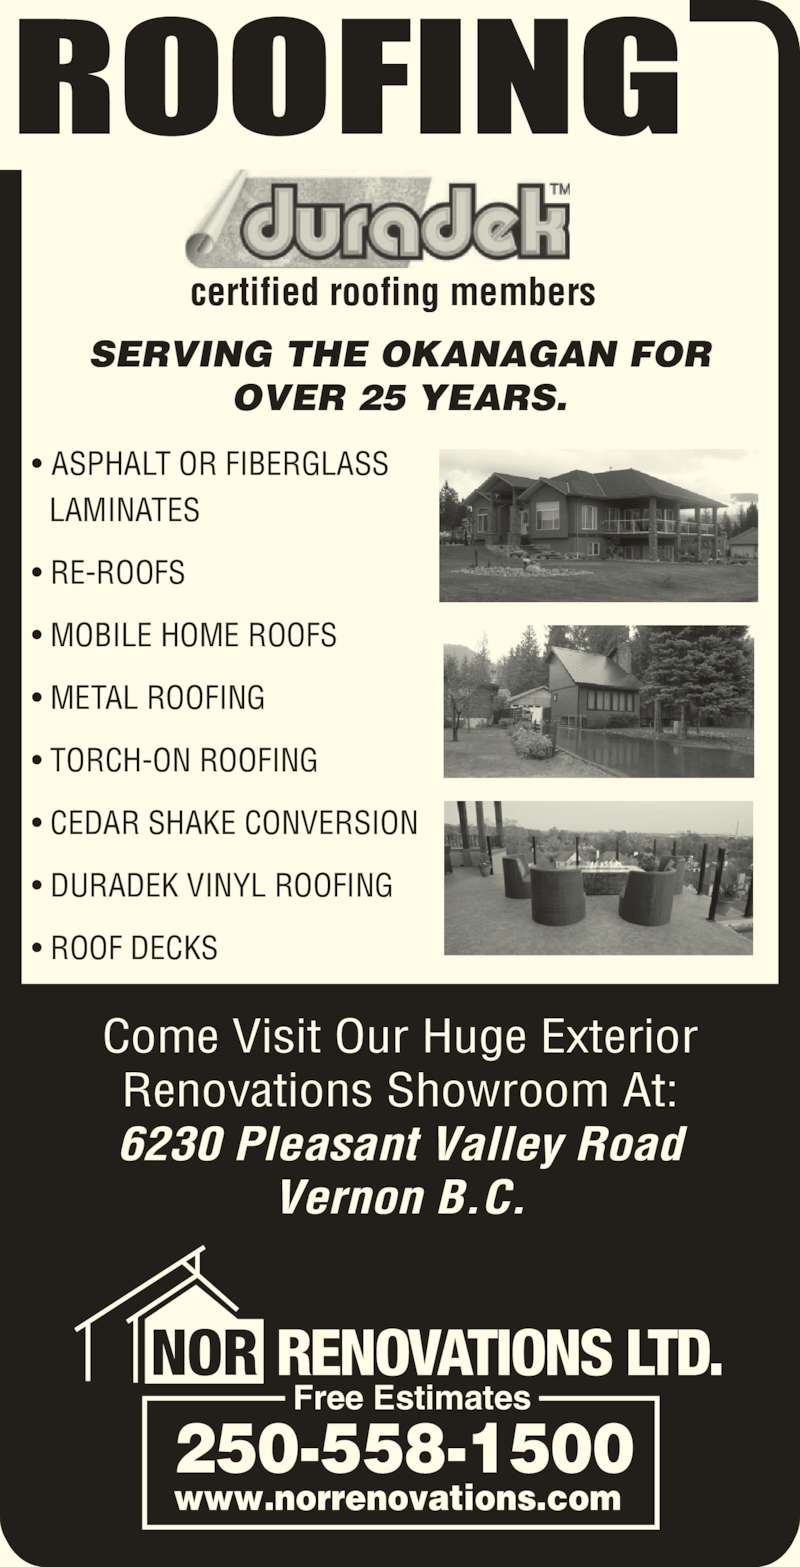 NOR Renovations Ltd (250-558-1500) - Display Ad - Renovations Showroom At: 6230 Pleasant Valley Road Vernon B.C. certified roofing members SERVING THE OKANAGAN FOR OVER 25 YEARS. ROOFING NOR RENOVATIONS LTD. Free Estimates 250-558-1500 www.norrenovations.com ? ASPHALT OR FIBERGLASS   LAMINATES ? RE-ROOFS ? MOBILE HOME ROOFS ? METAL ROOFING ? TORCH-ON ROOFING ? CEDAR SHAKE CONVERSION ? DURADEK VINYL ROOFING ? ROOF DECKS Come Visit Our Huge Exterior